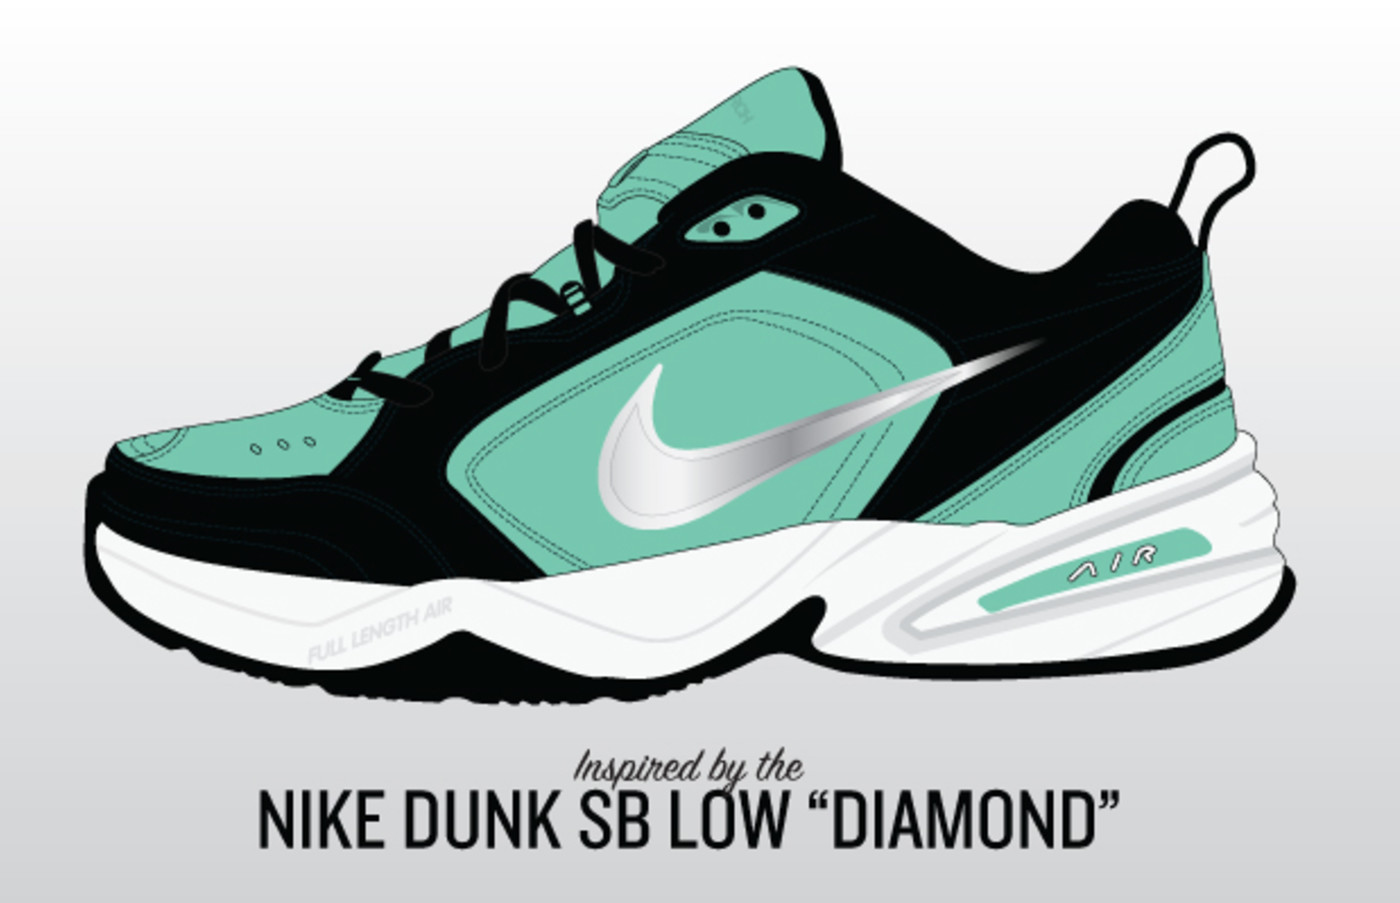 Imagining Classic Nike Colorways on the